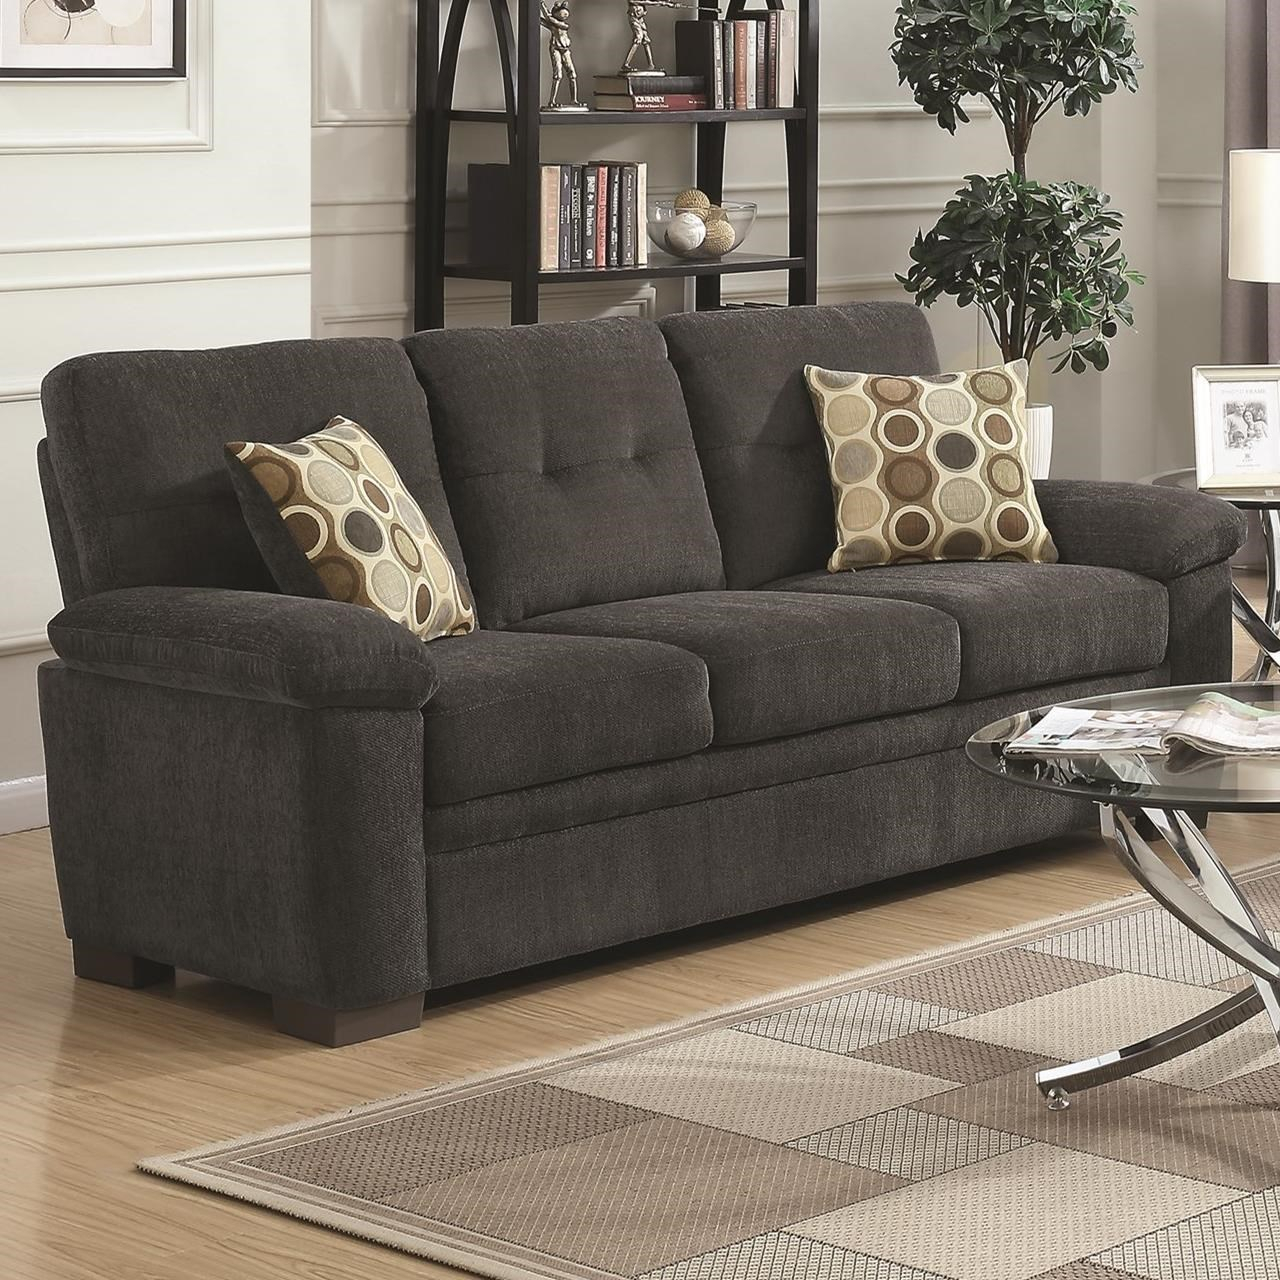 Fairbairn Sofa Casual Style Dark Grey Fabric 506584 Inside Casual Sofas And Chairs (View 7 of 15)